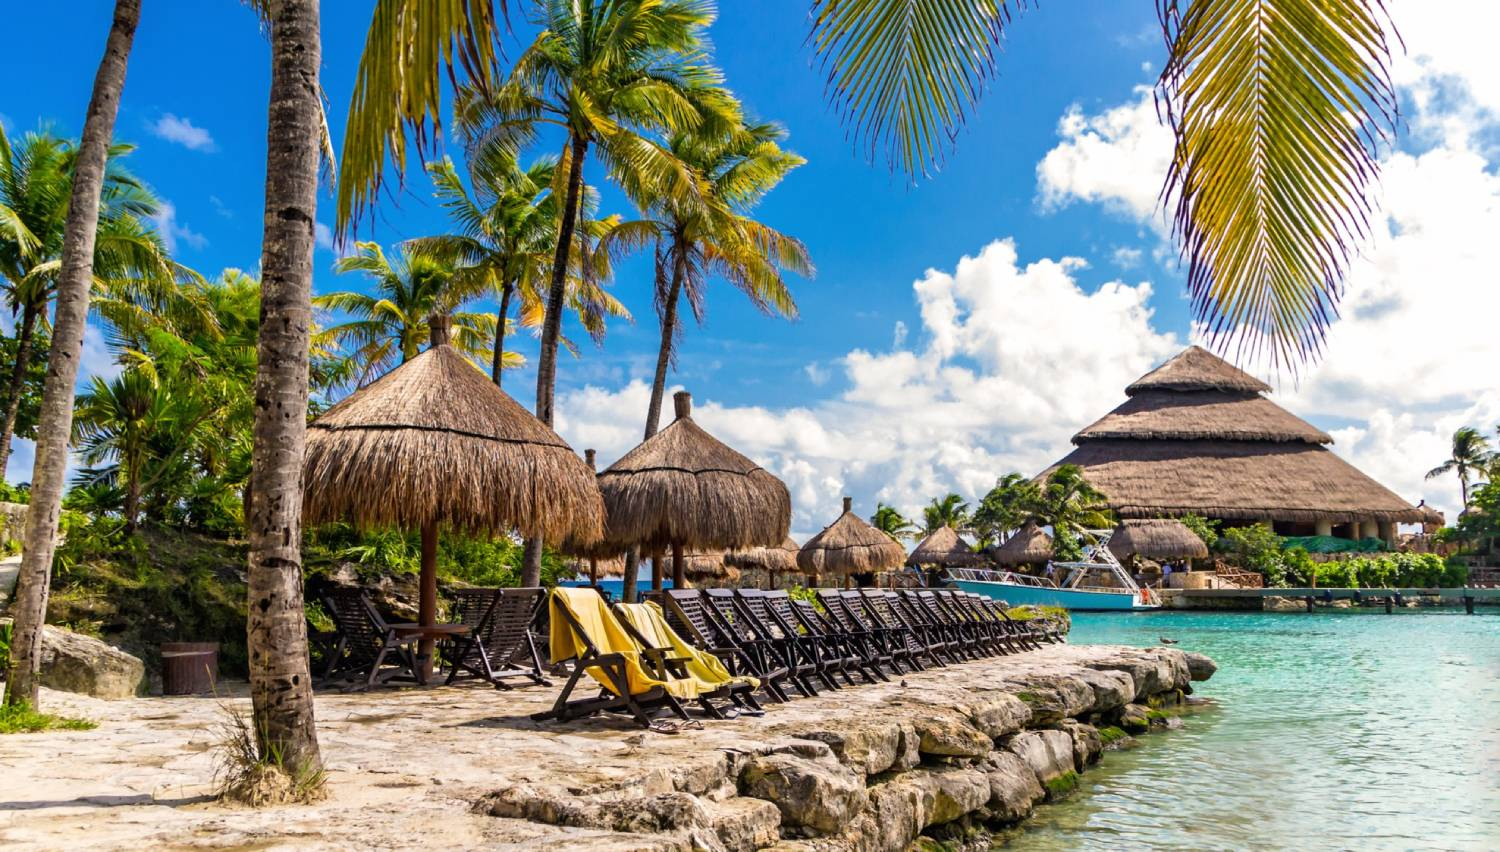 Xcaret - Things To Do In Tulum